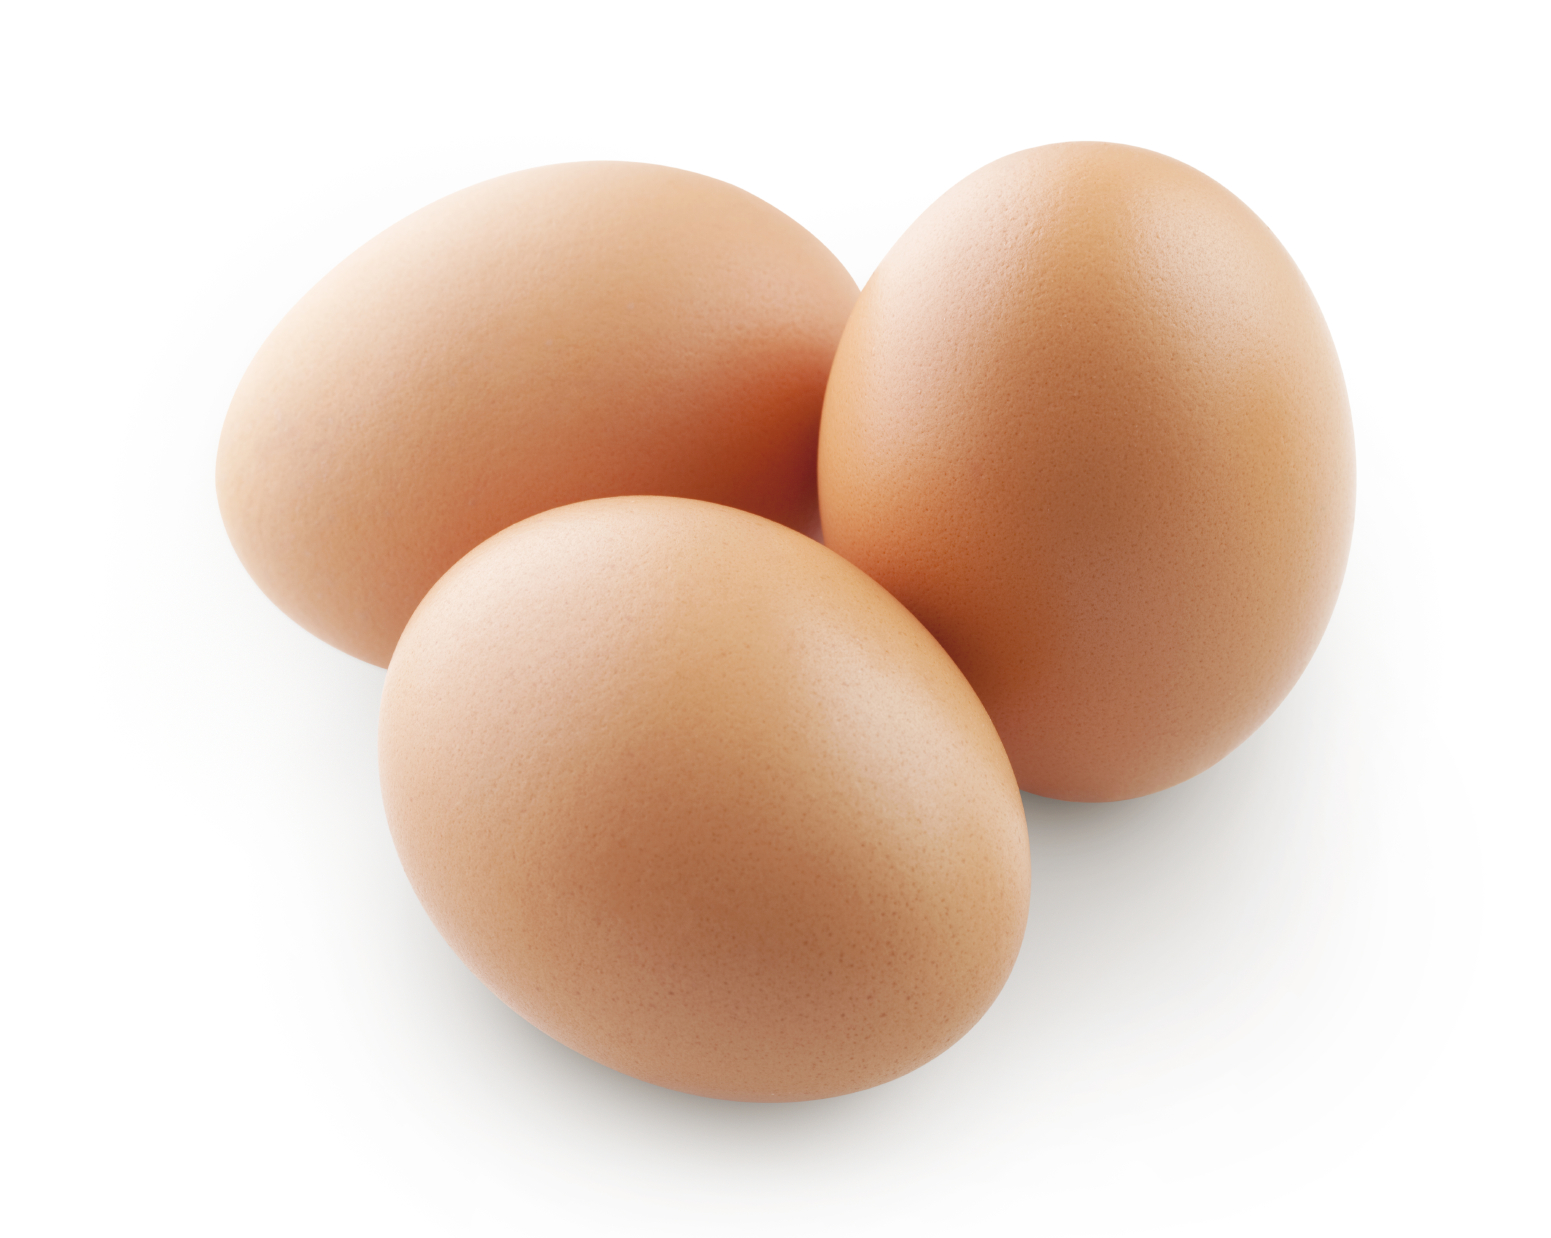 Eggs - protein and cholesterol for bodybuilding